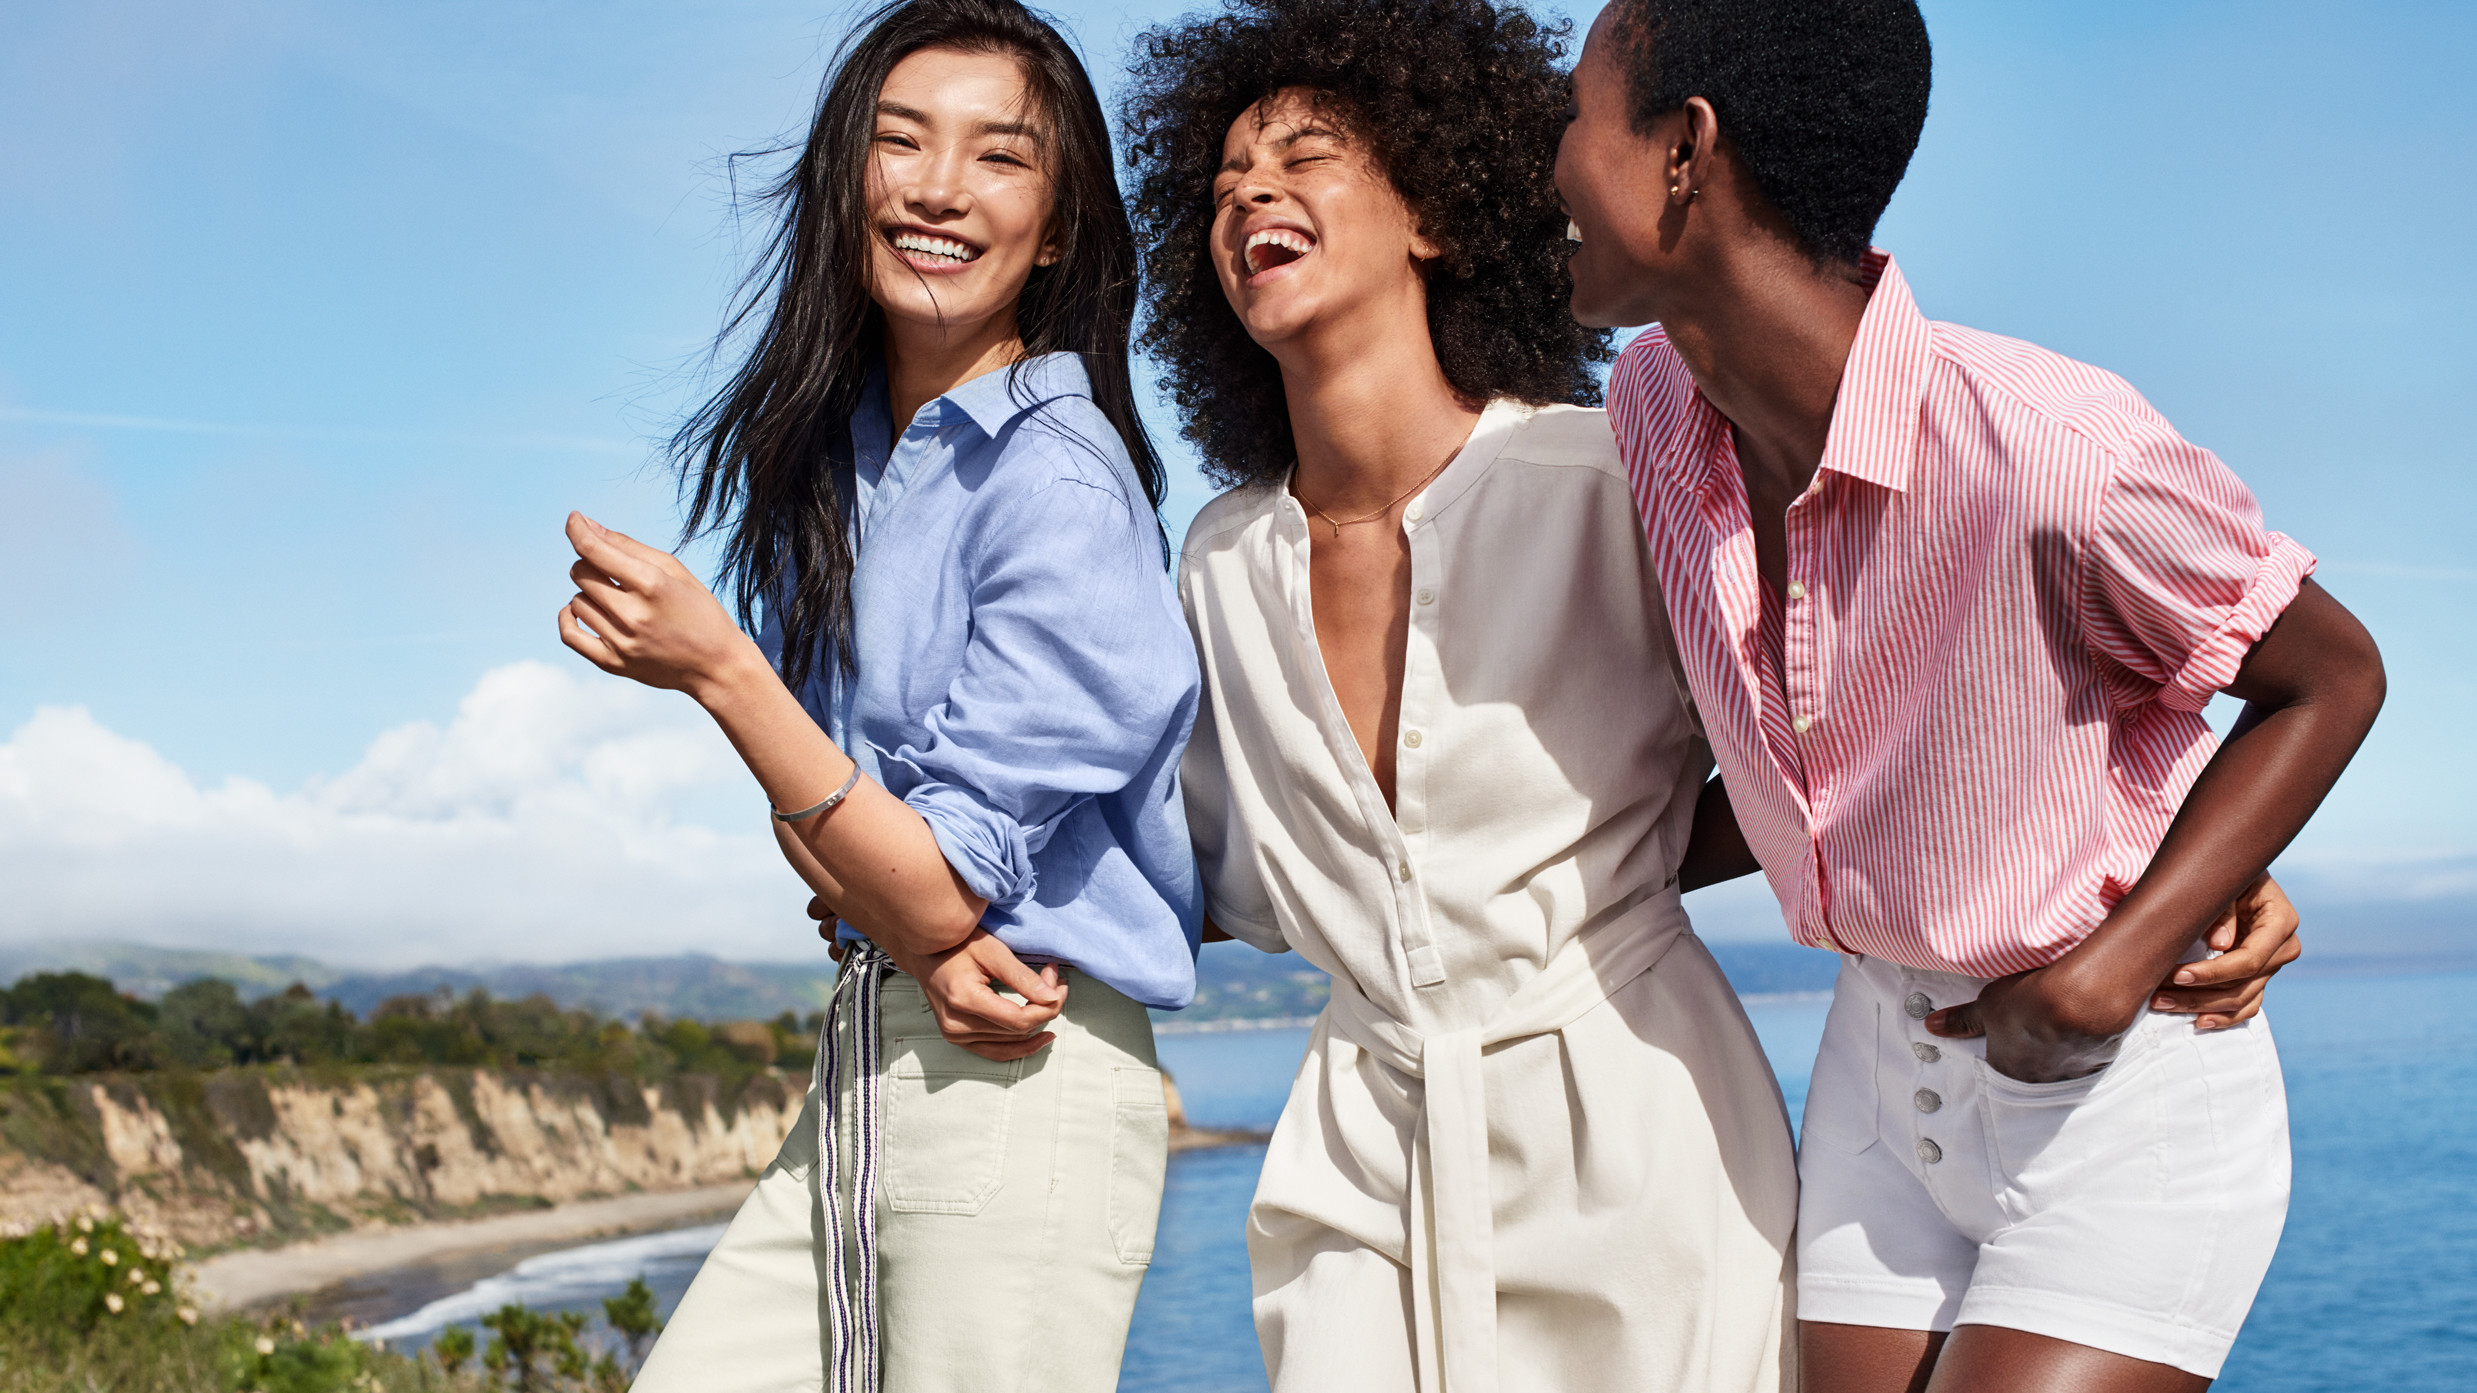 Gap Inc American fashion SS2019 Summer campaign